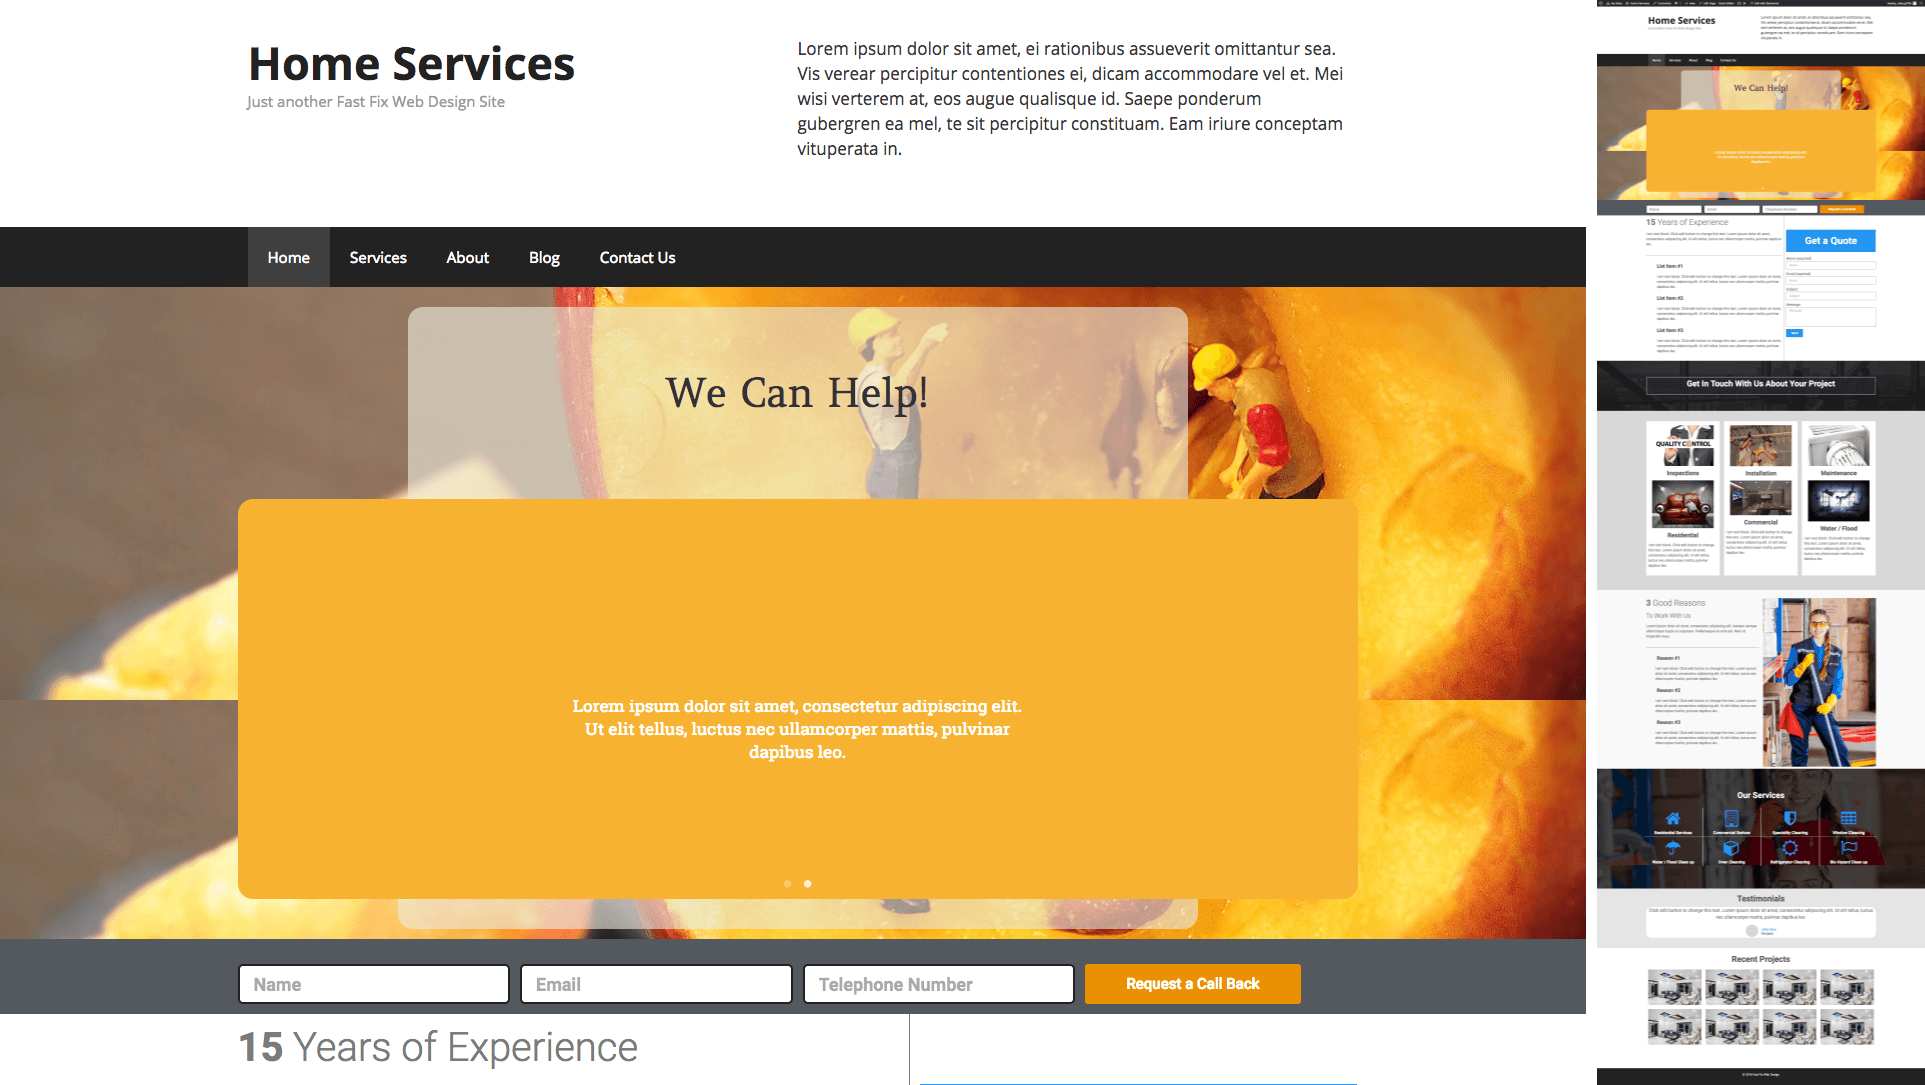 WordPress Home Services Site